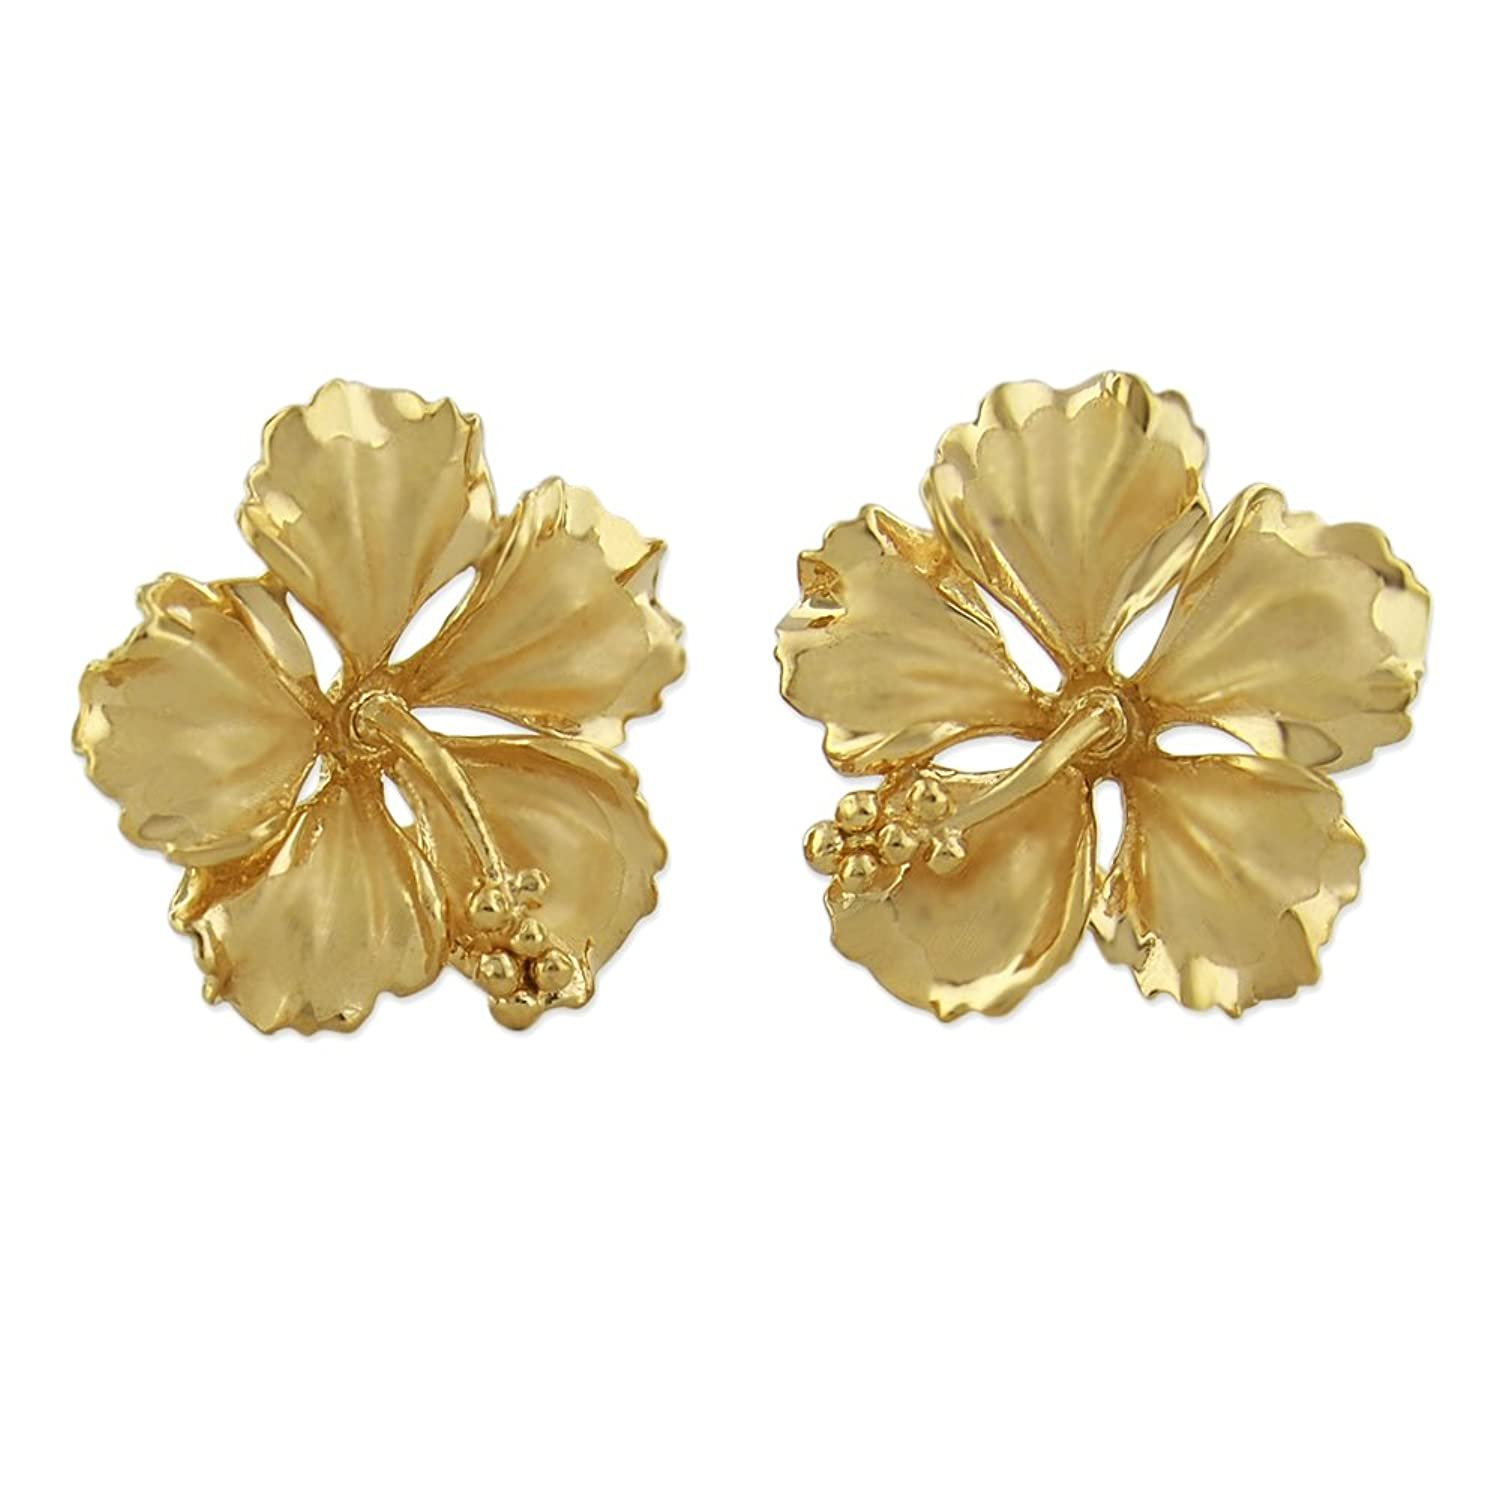 Amazon.com: 14kt Yellow Gold Plated Sterling Silver 5/8 Inch ...